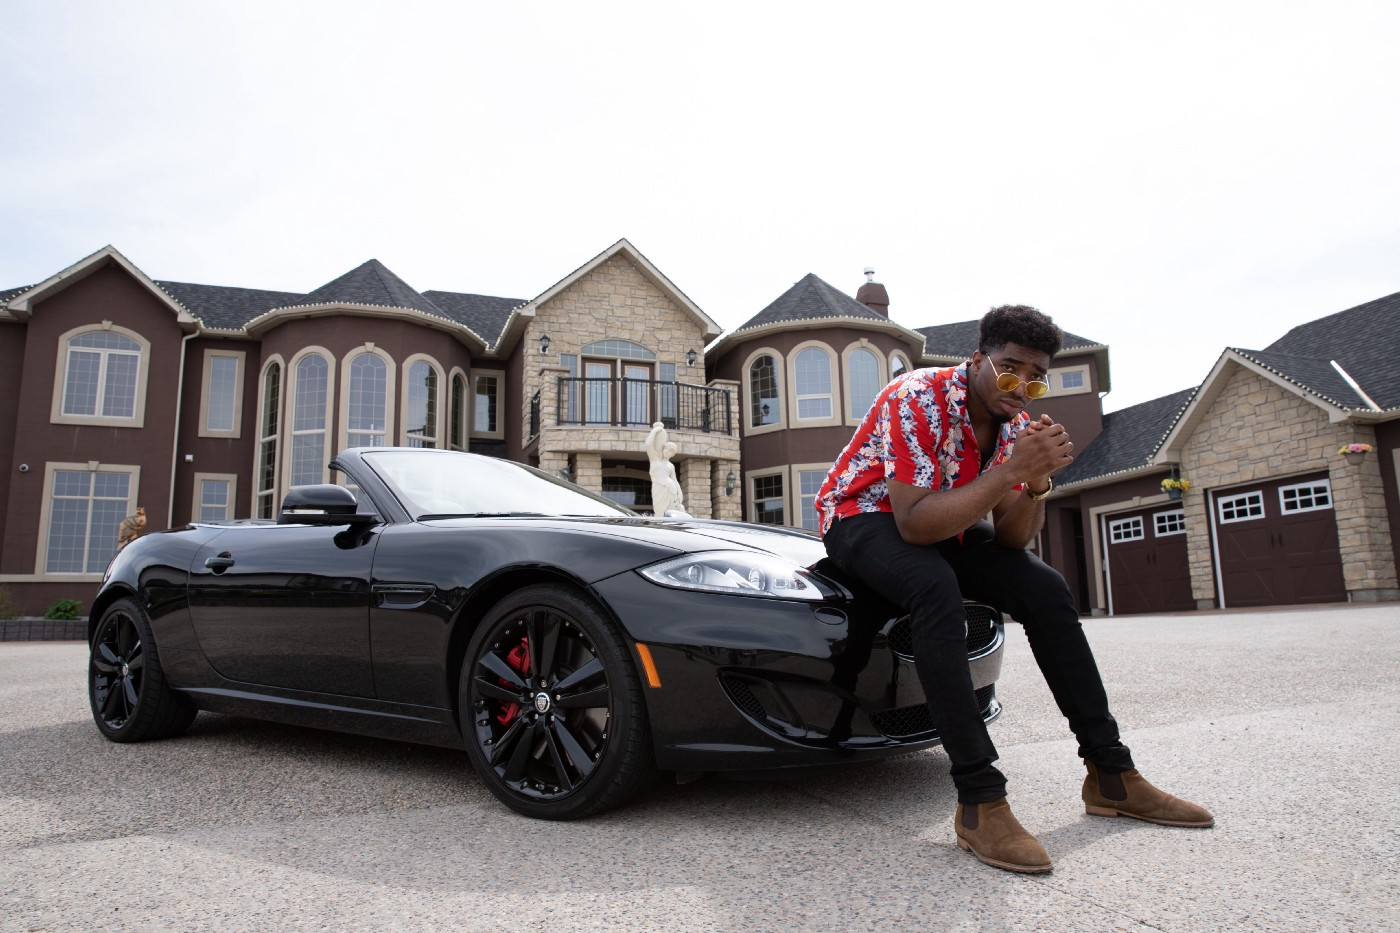 Man posing on car in front of mansion